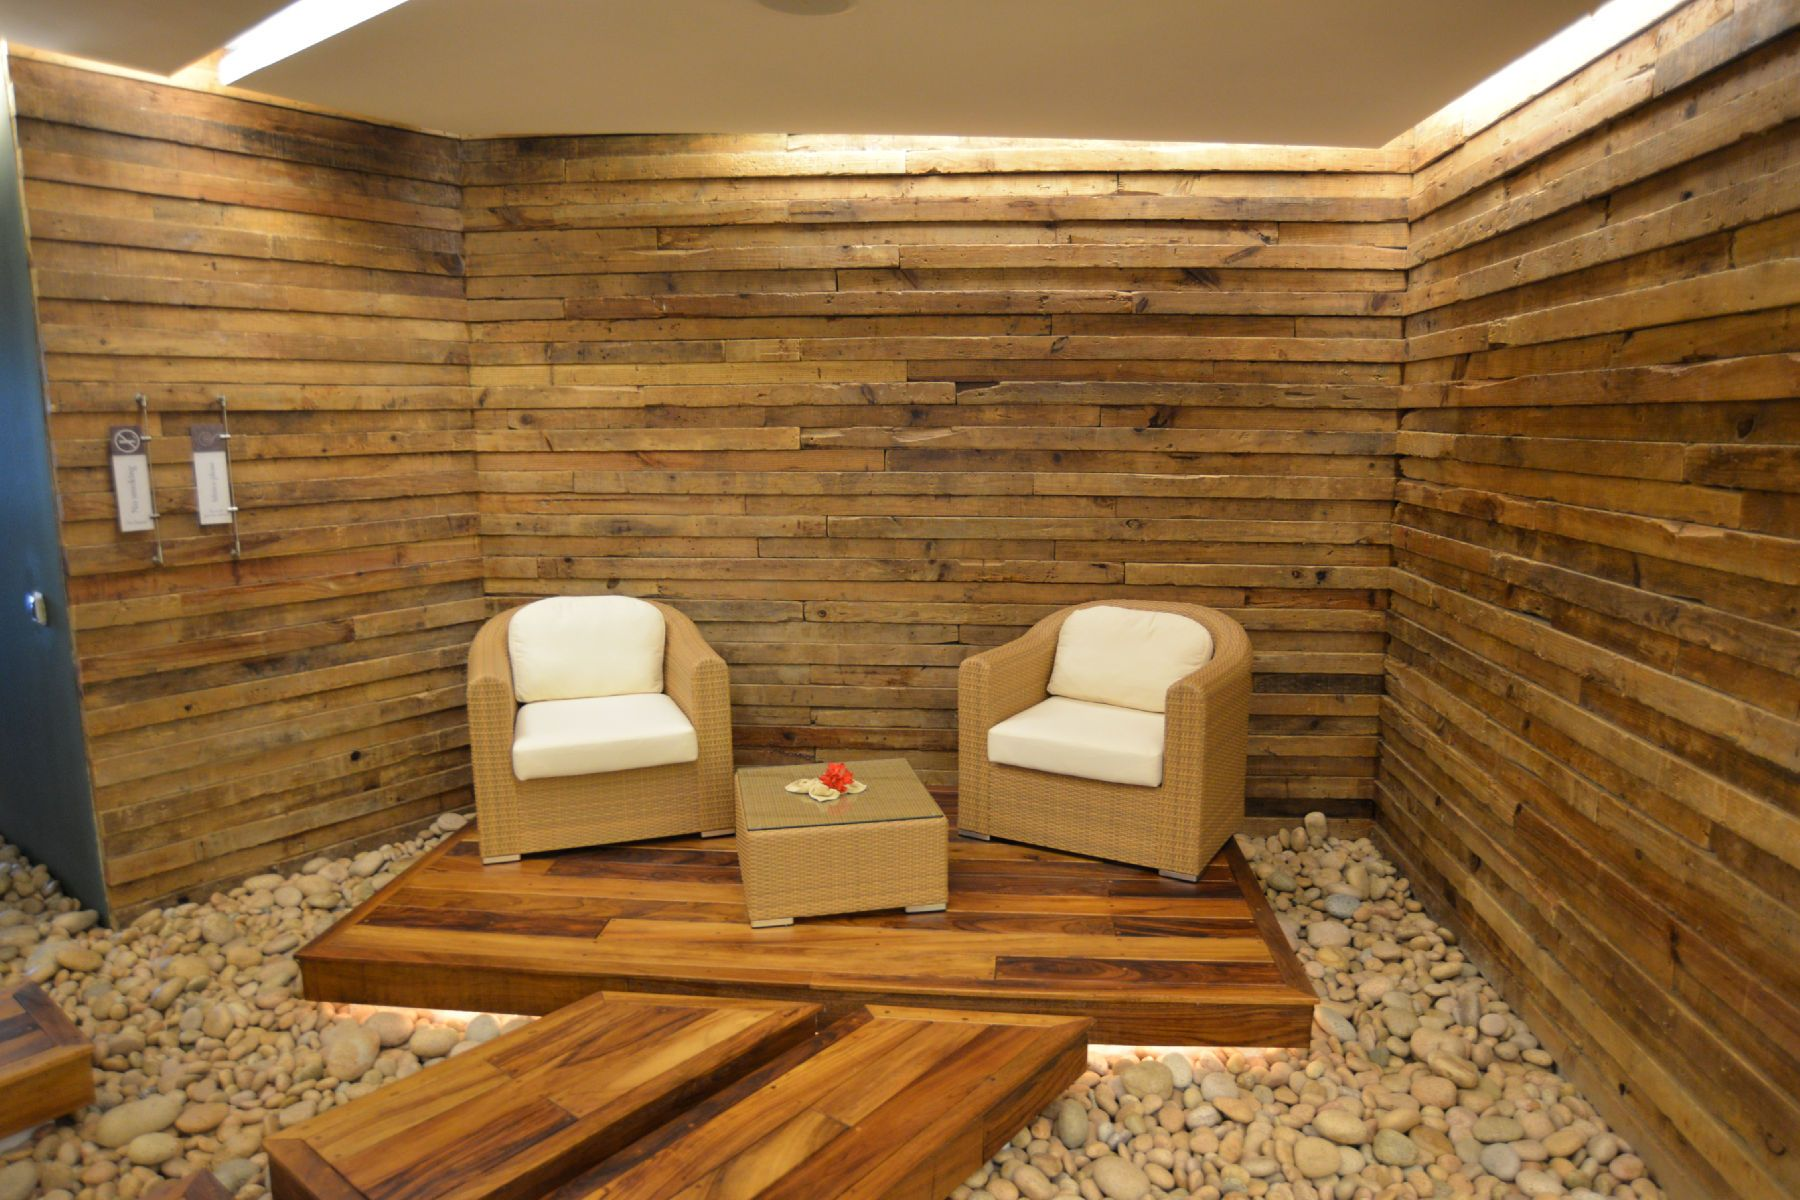 Secrets Spa by Pevonia - Now Amber - #Puerto #Vallarta, #Mexico #Now #Amber #Travel